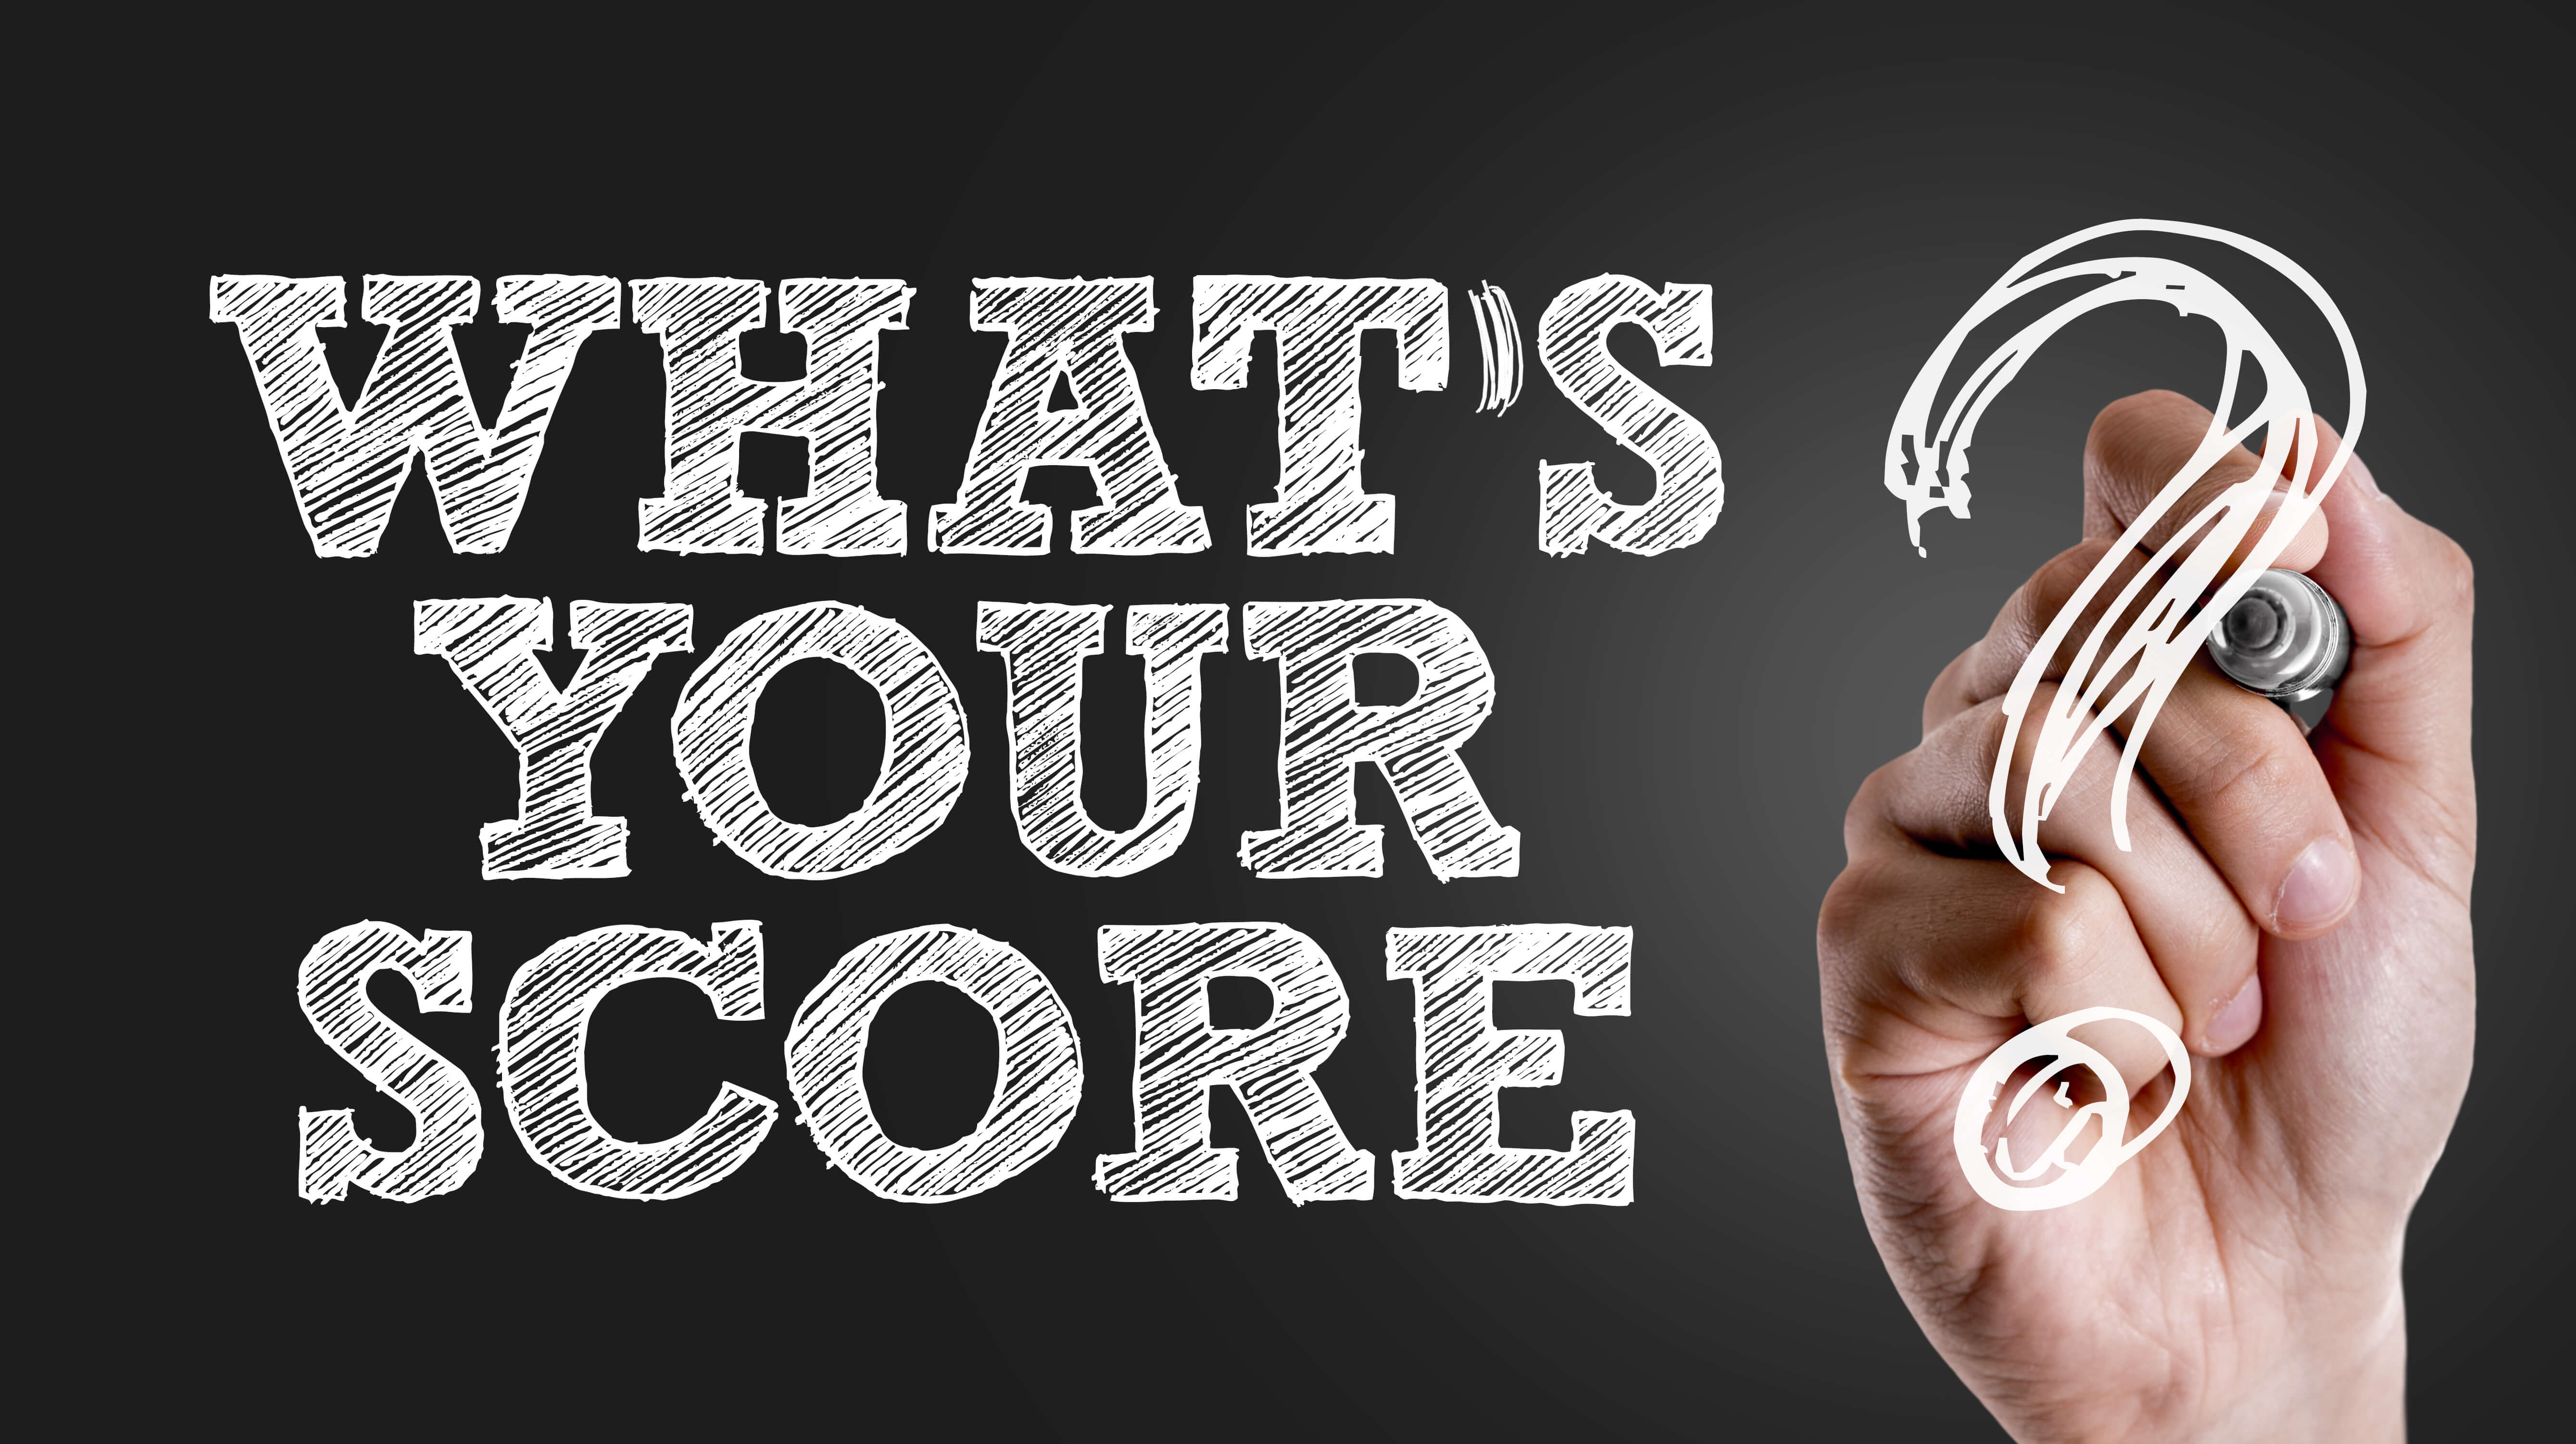 How Do You Score Well On USMLE®, COMLEX®, Shelf, and Board Multiple Choice Tests?